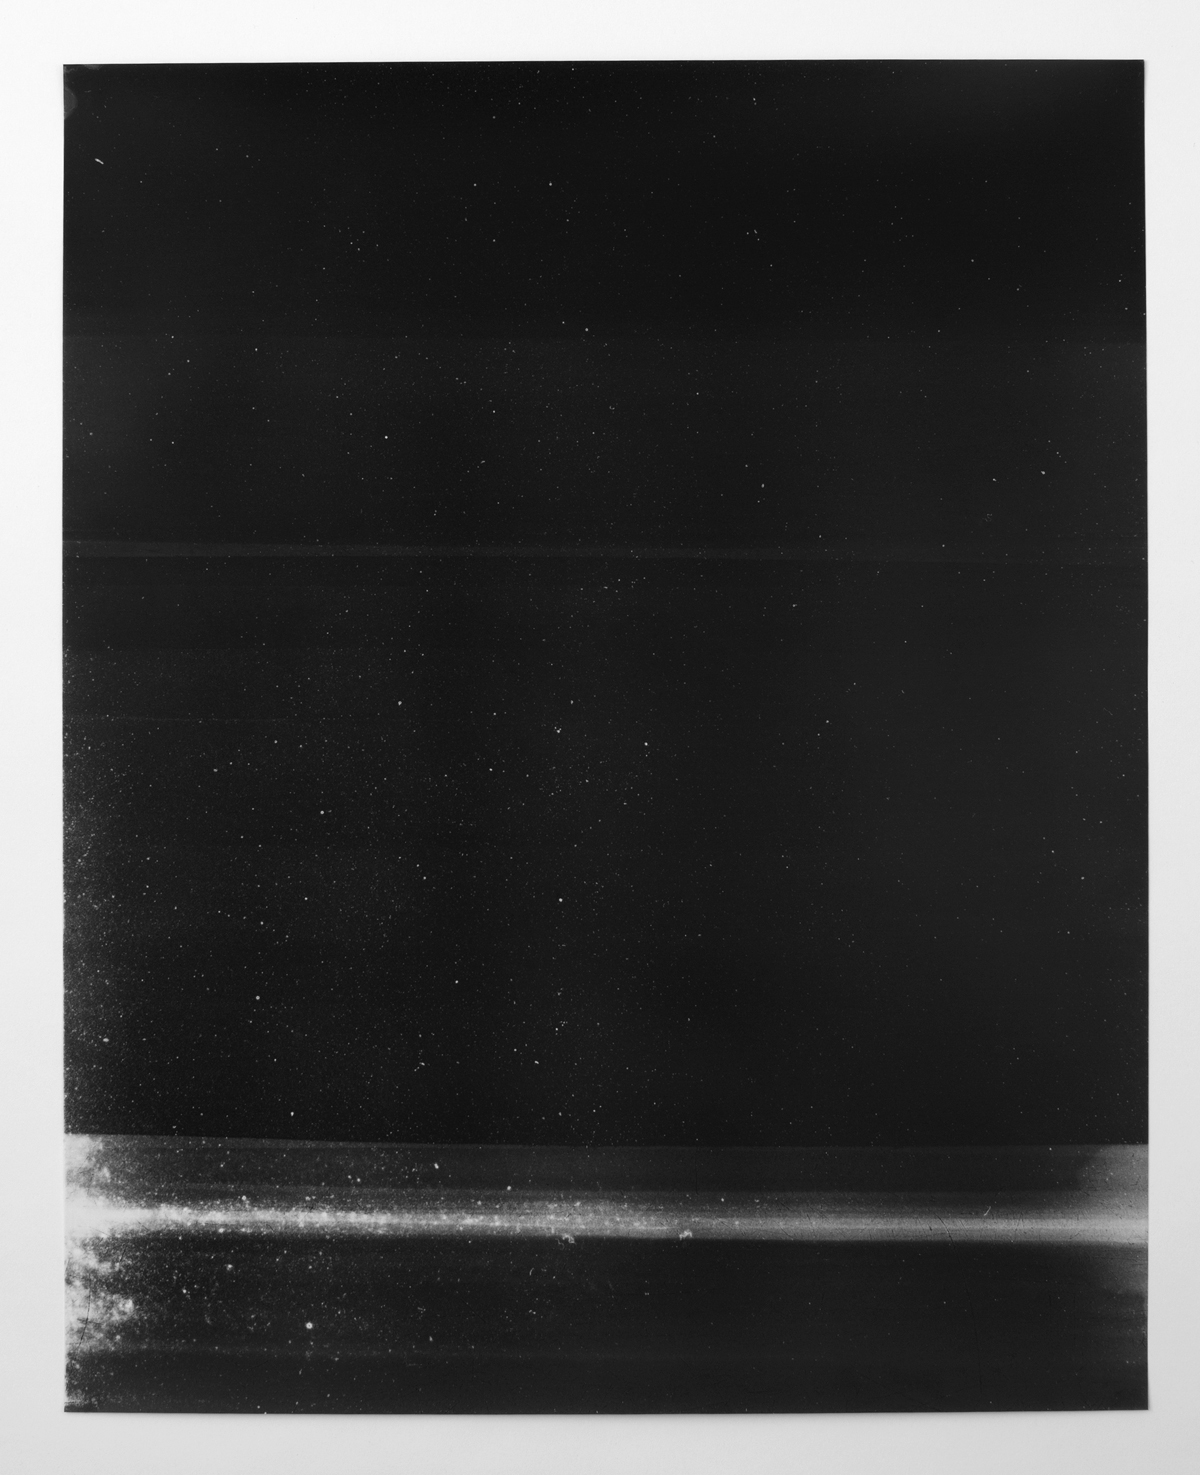 Untitled (black, from the series reflected/repeated - light becomes form, the horizon rests into view)  2015.  Oil based ink painted on frosted mylar.  20 x 25 inches unframed.